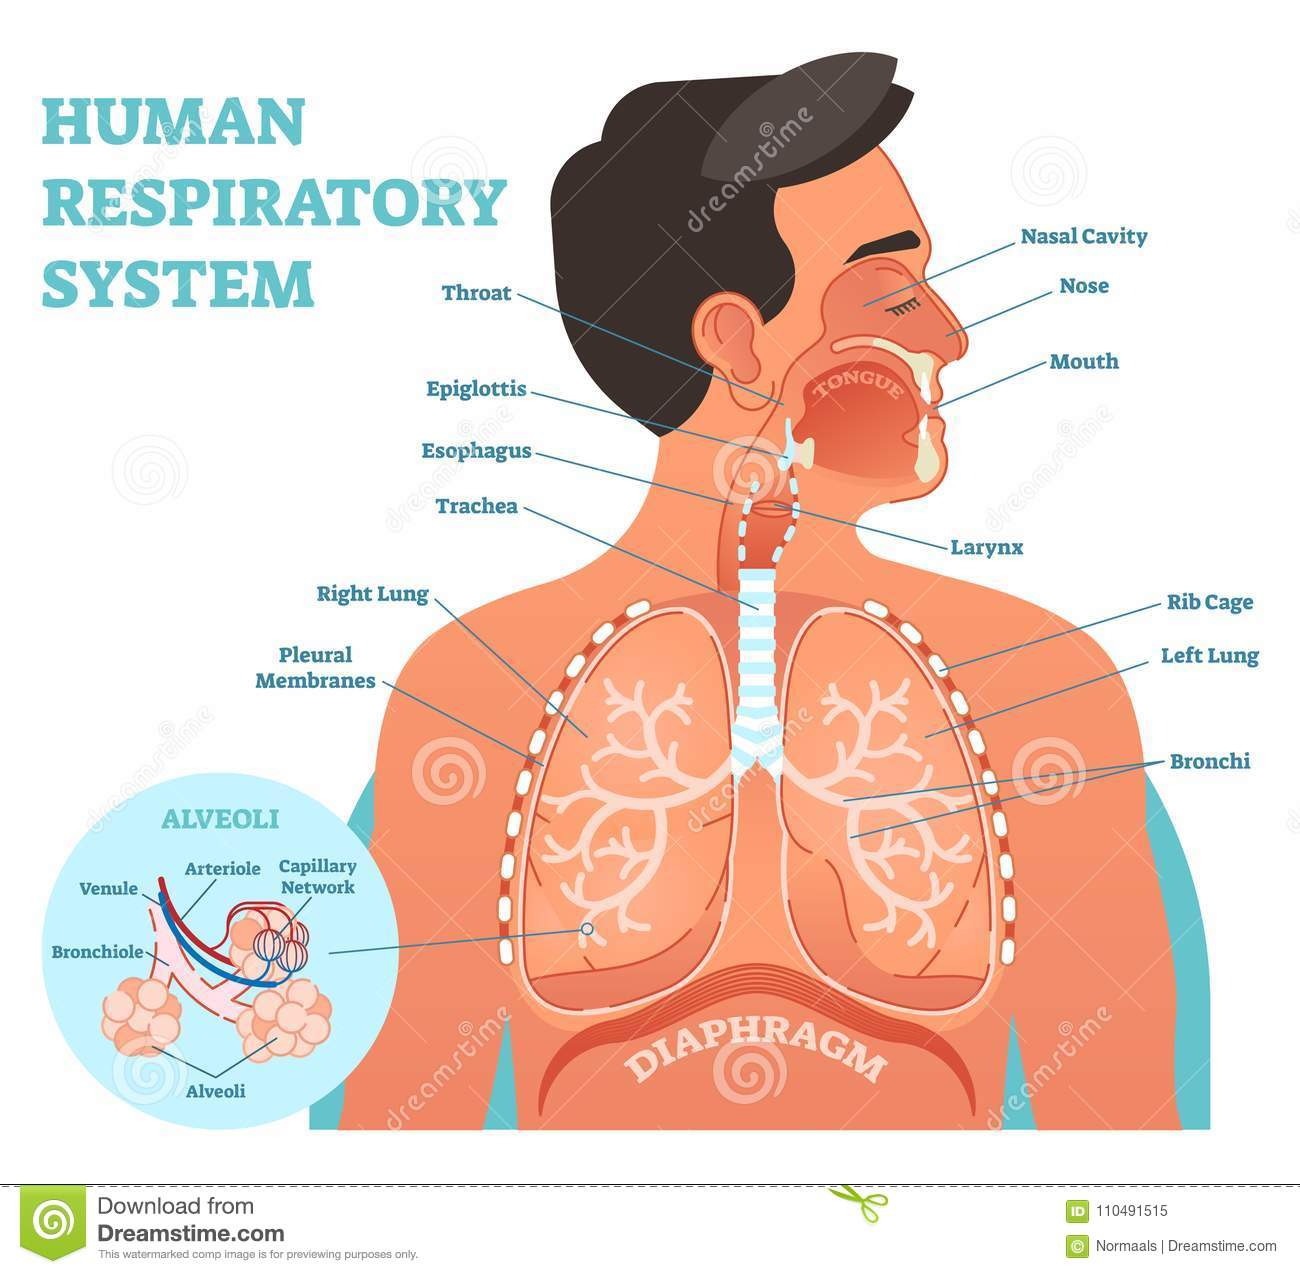 hight resolution of human respiratory system anatomical vector illustration medical education cross section diagram with nasal cavity throat esophagus trachea